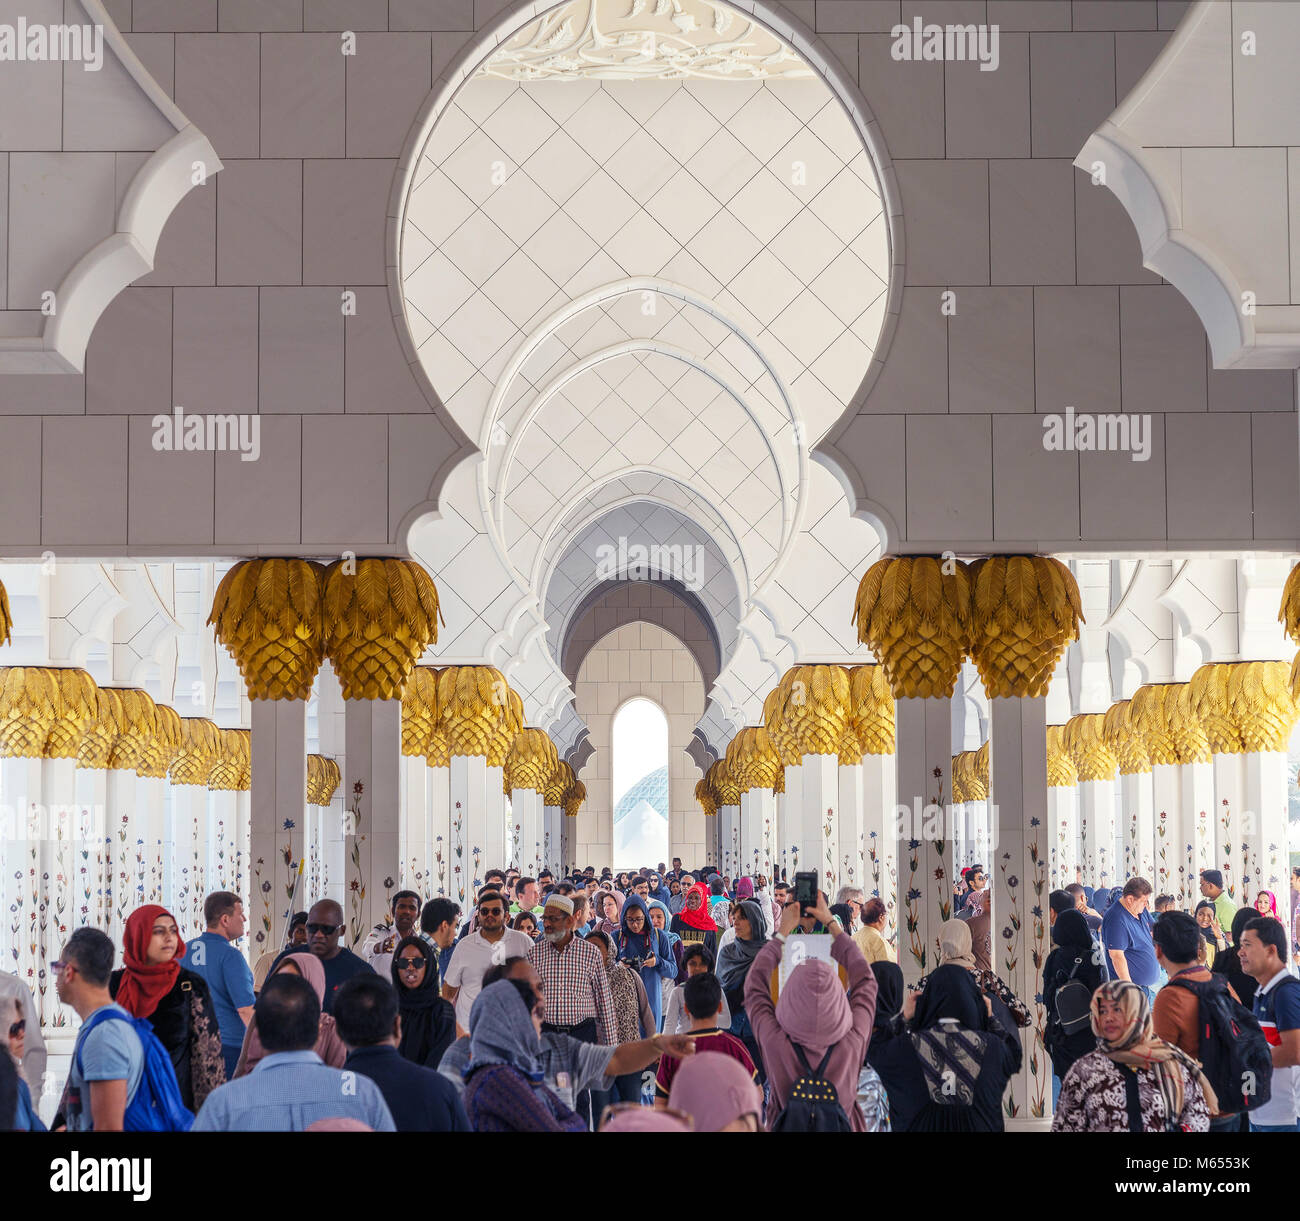 28th December 2017 - Abu Dhabi, UAE. Tourists visiting gorgeous Sheikh Zayed mosque during winter holidays. Stock Photo